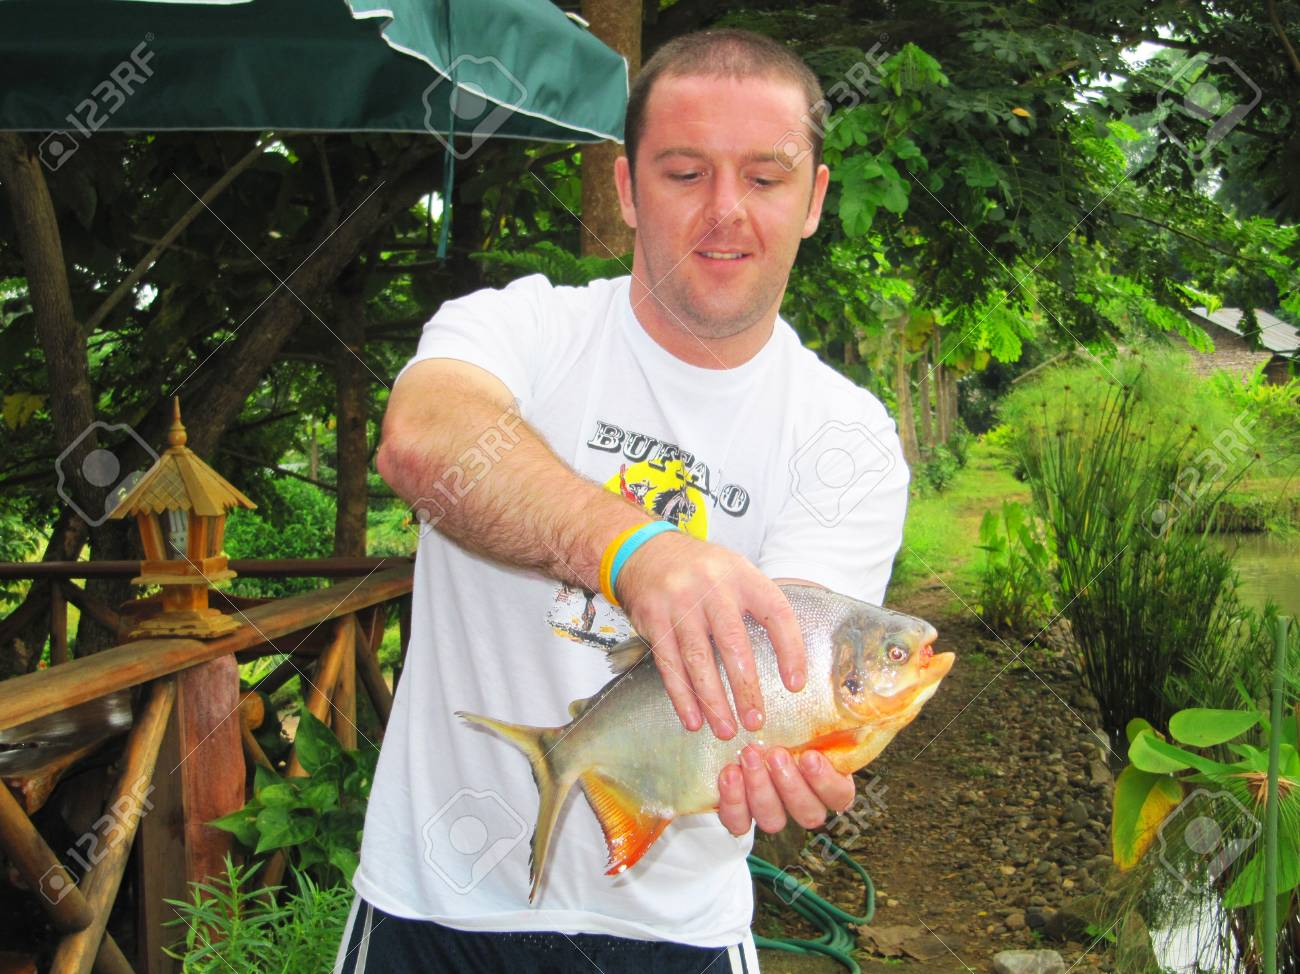 Man holding a live caught fish in Thailand                                        Stock Photo - 13714806